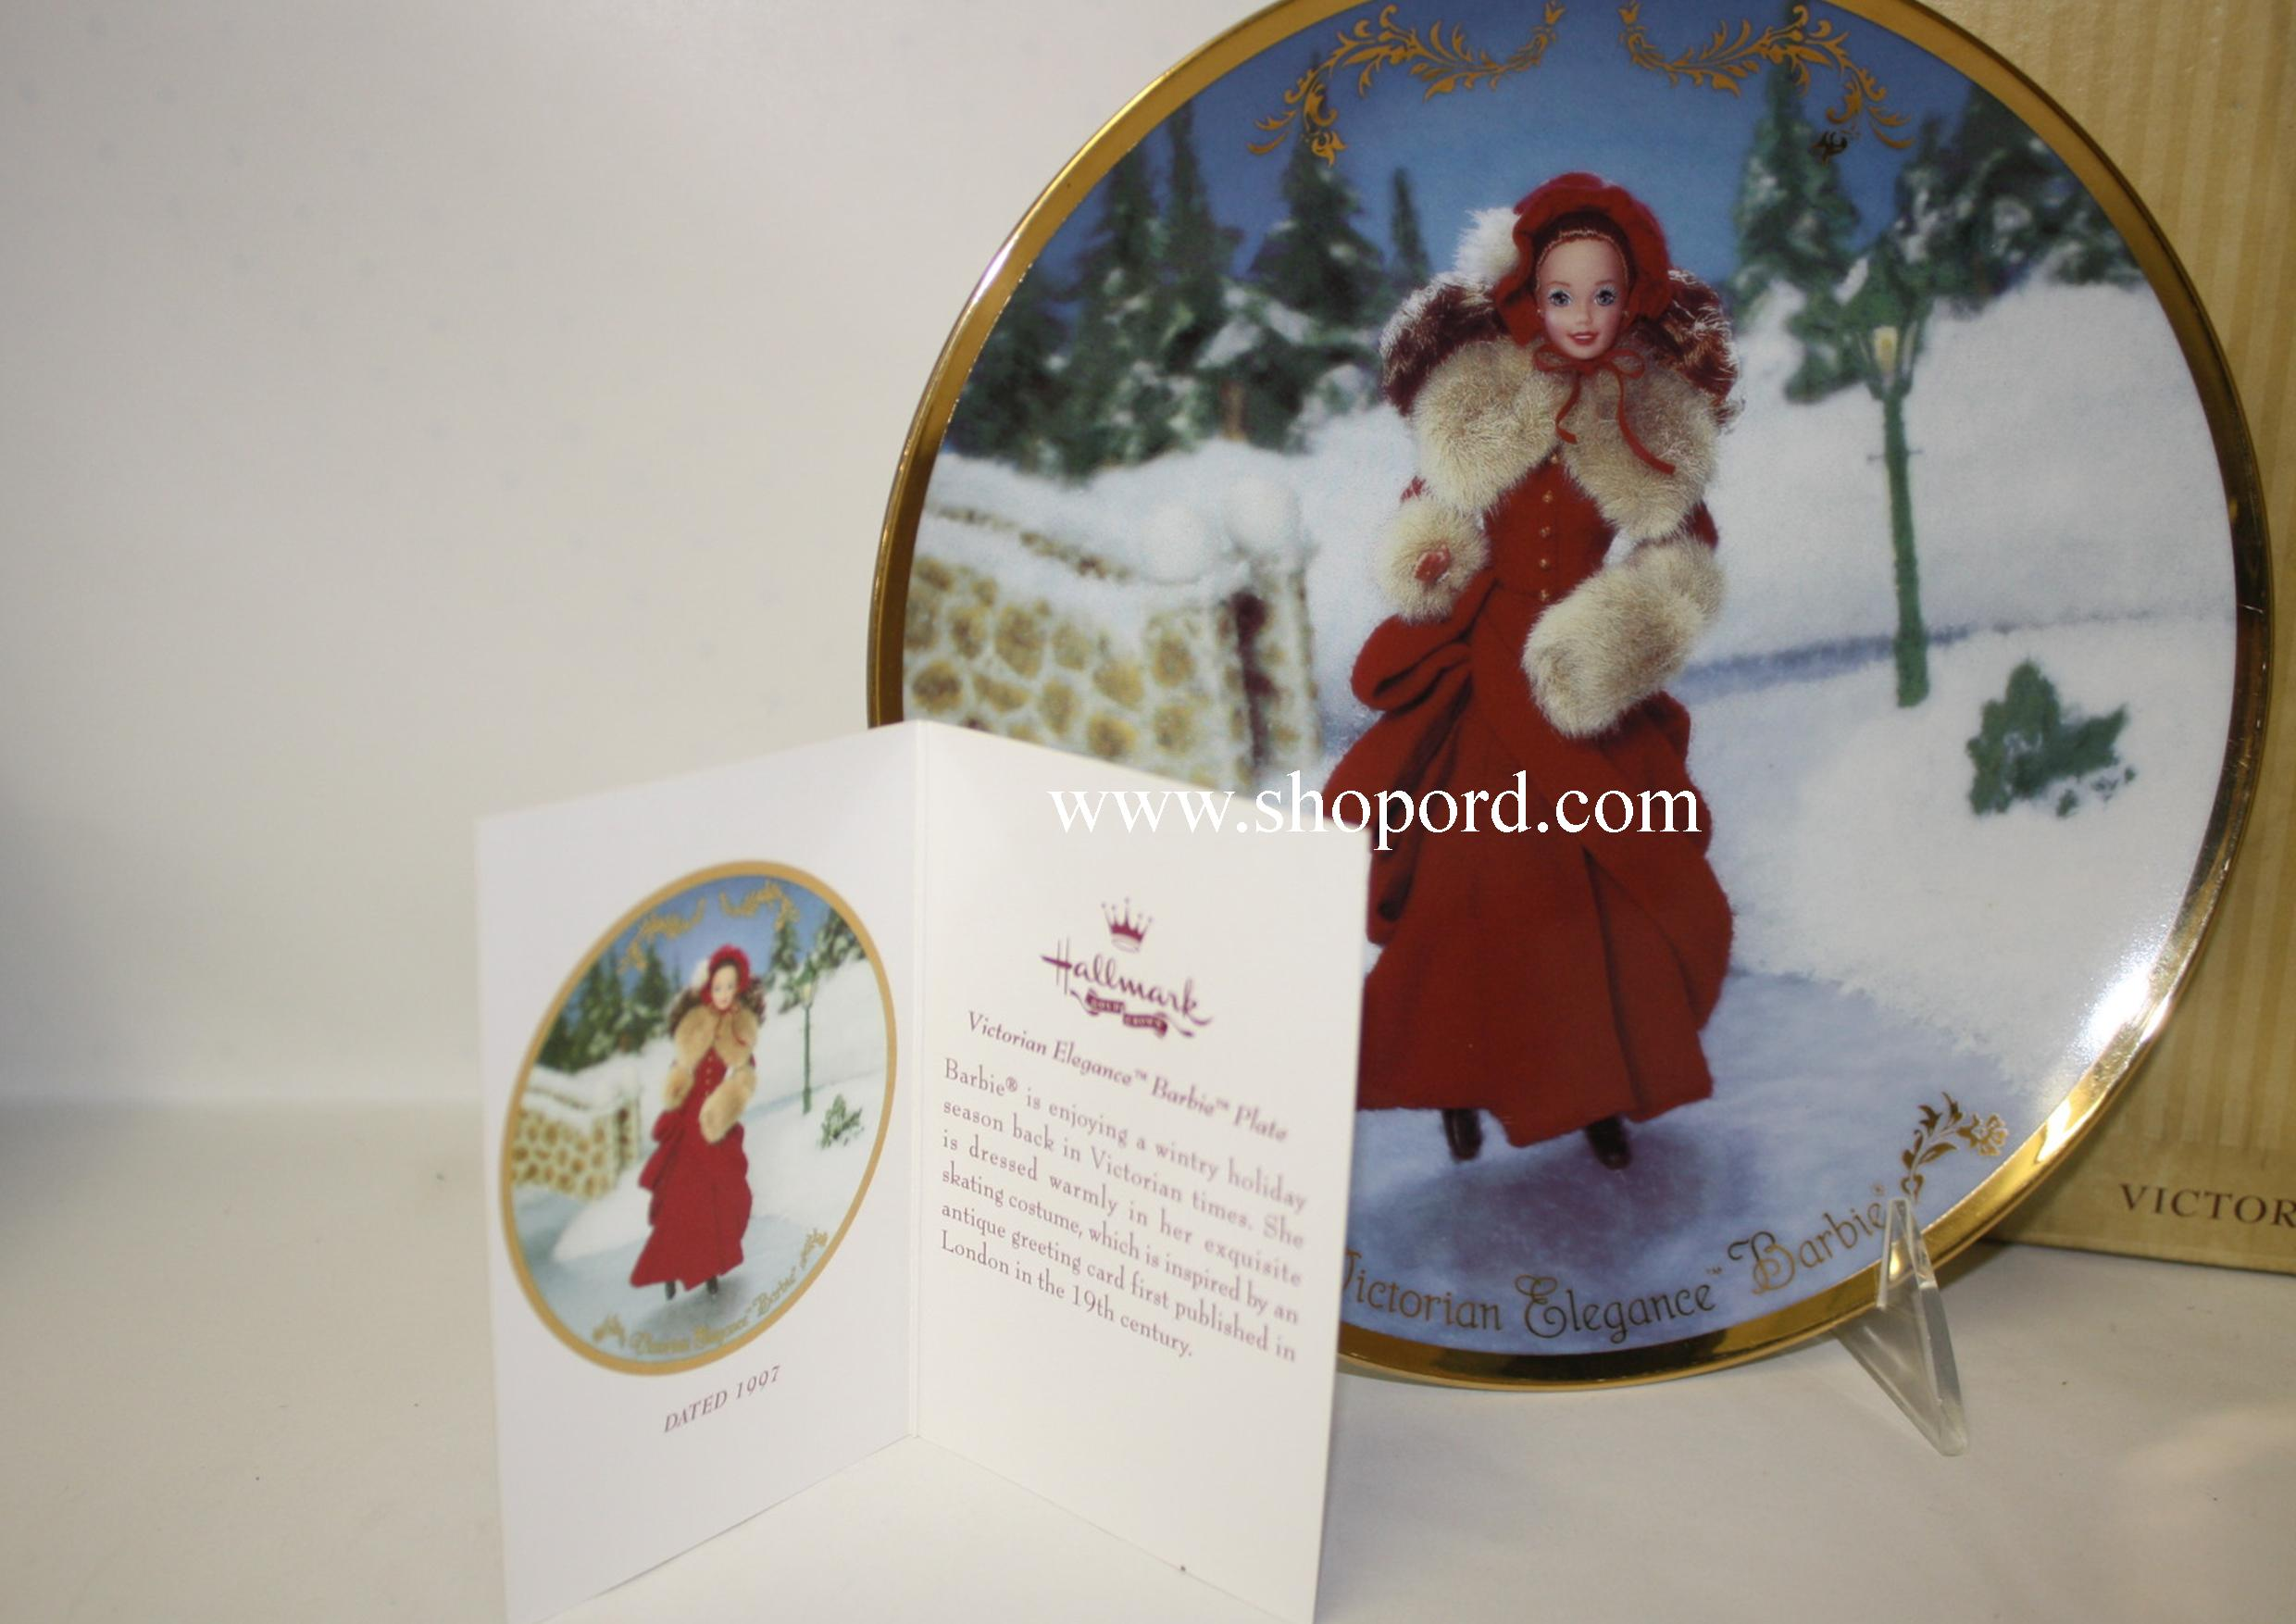 Hallmark 1997 Victorian Elegance Barbie Plate Christmas Collection QHB6005 Limited Edition #3025 out of 24500 Plates